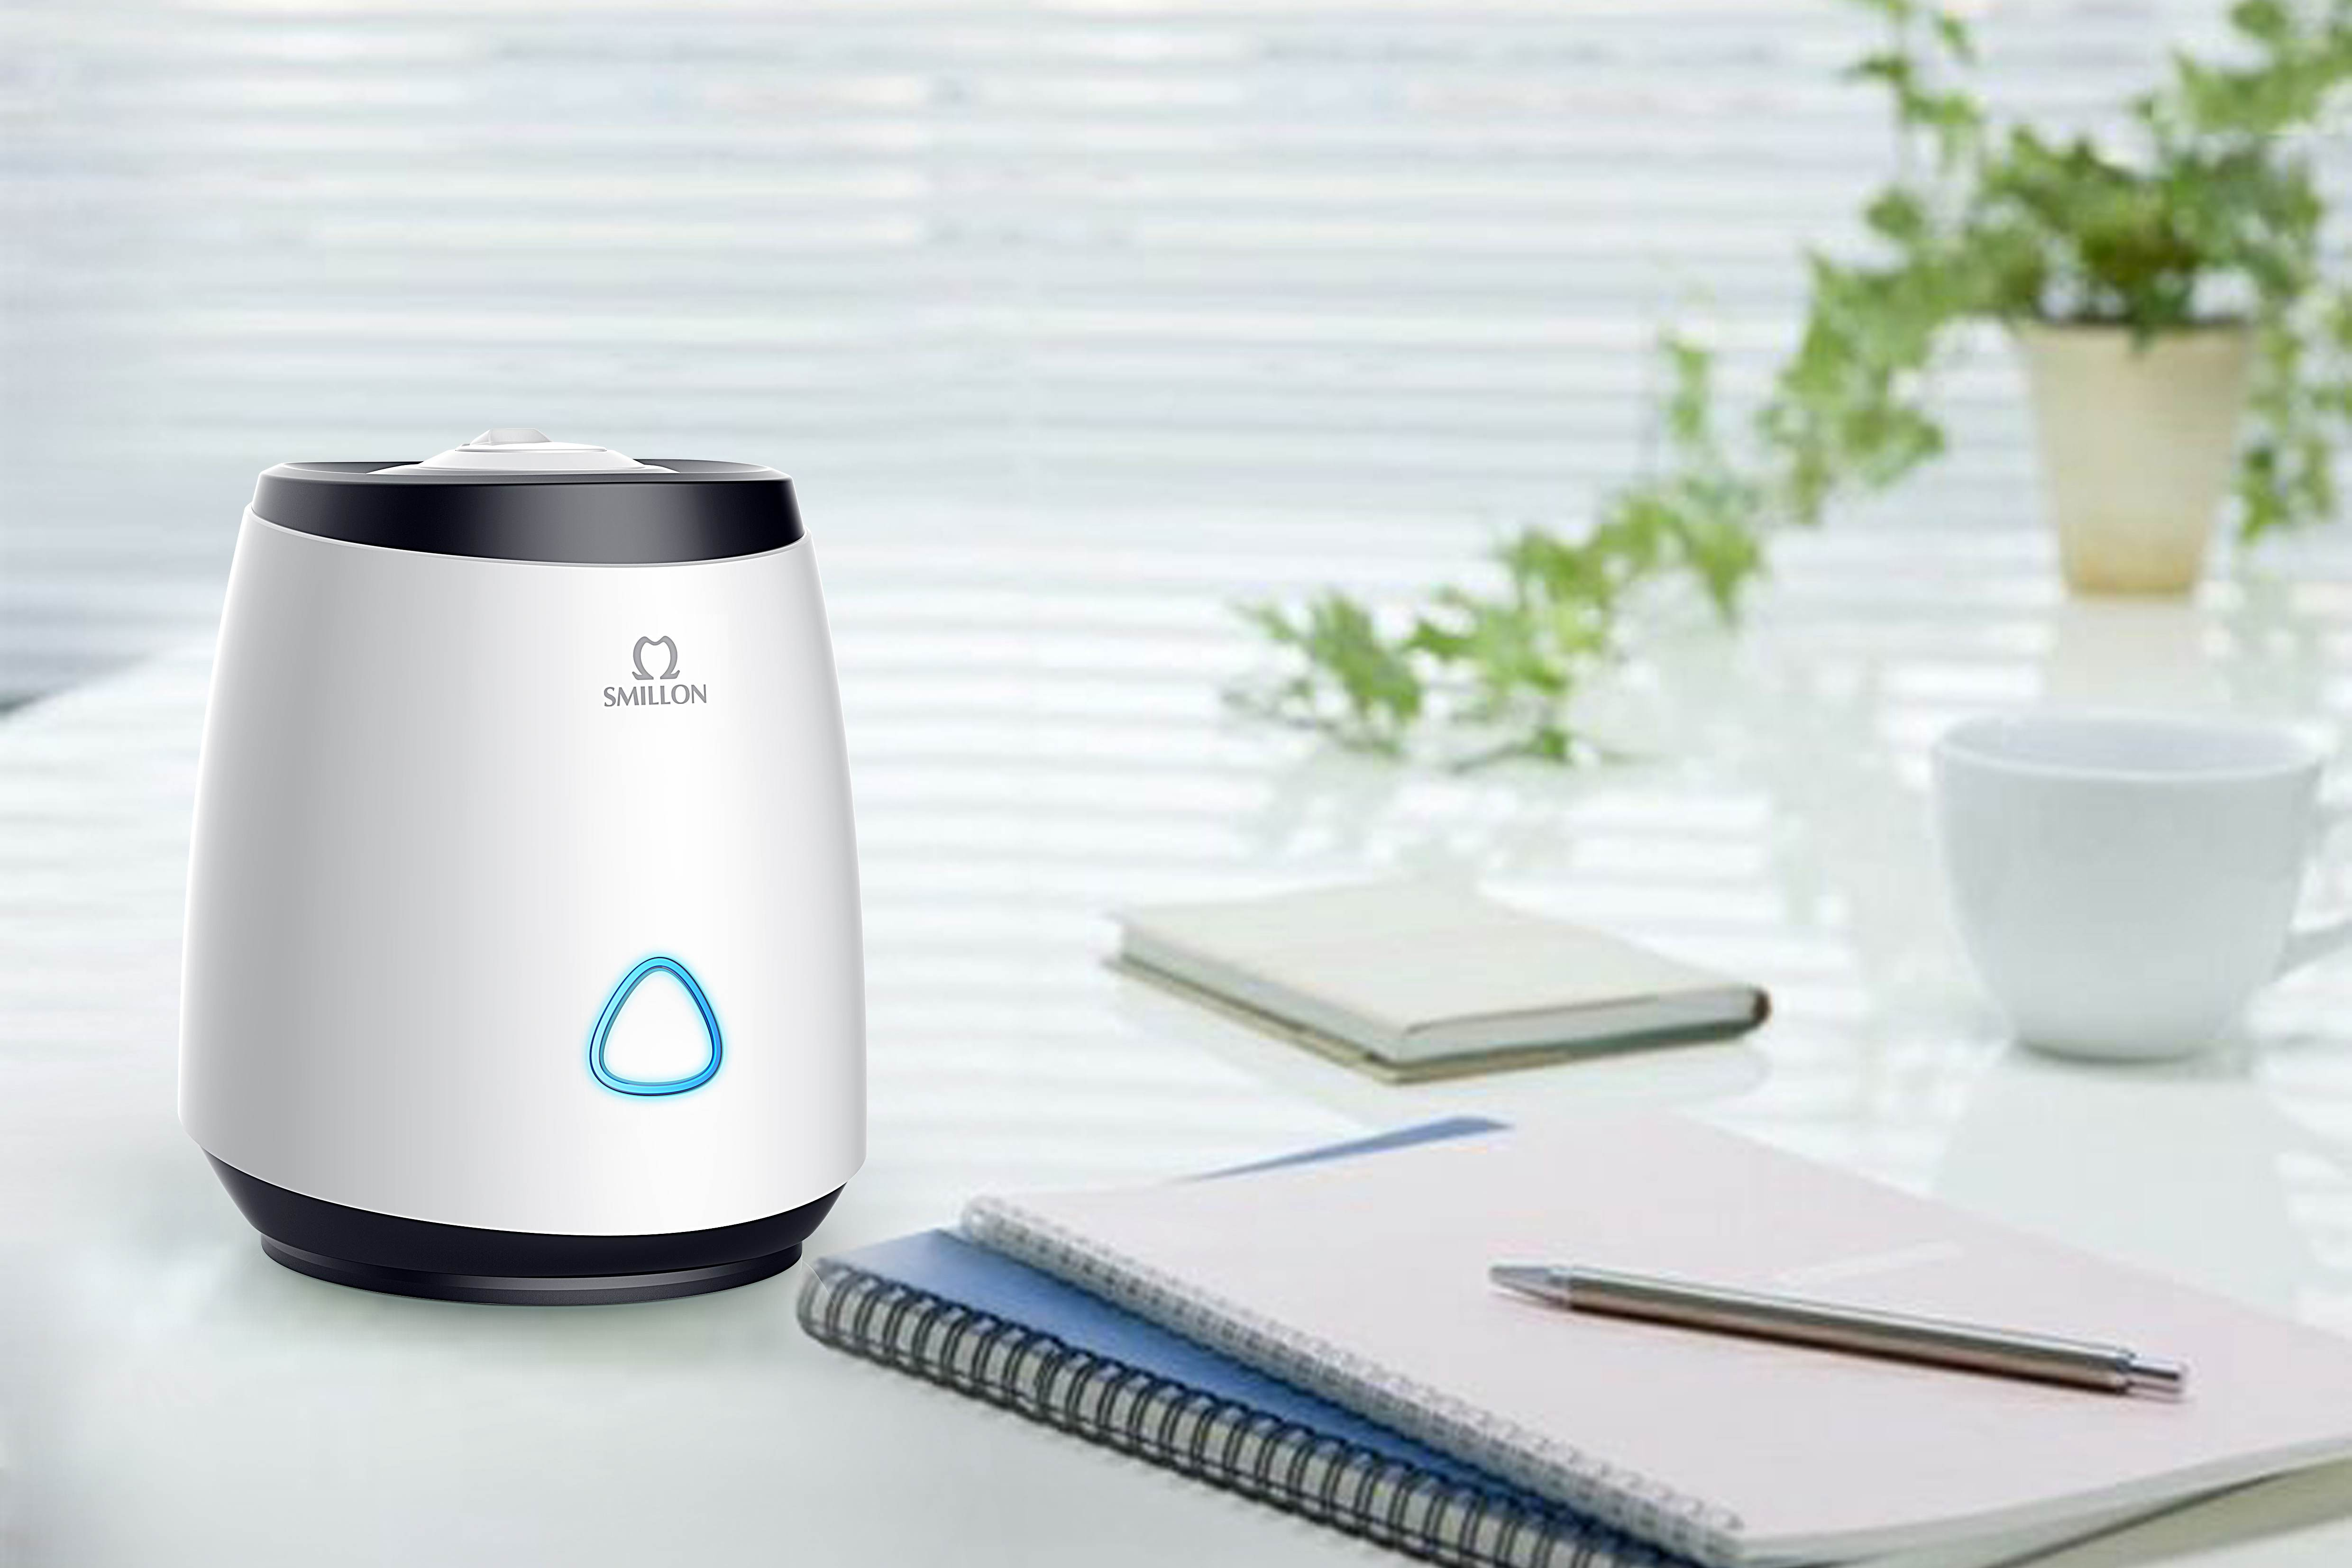 Cool mist, Cold Mist Humidifier 106